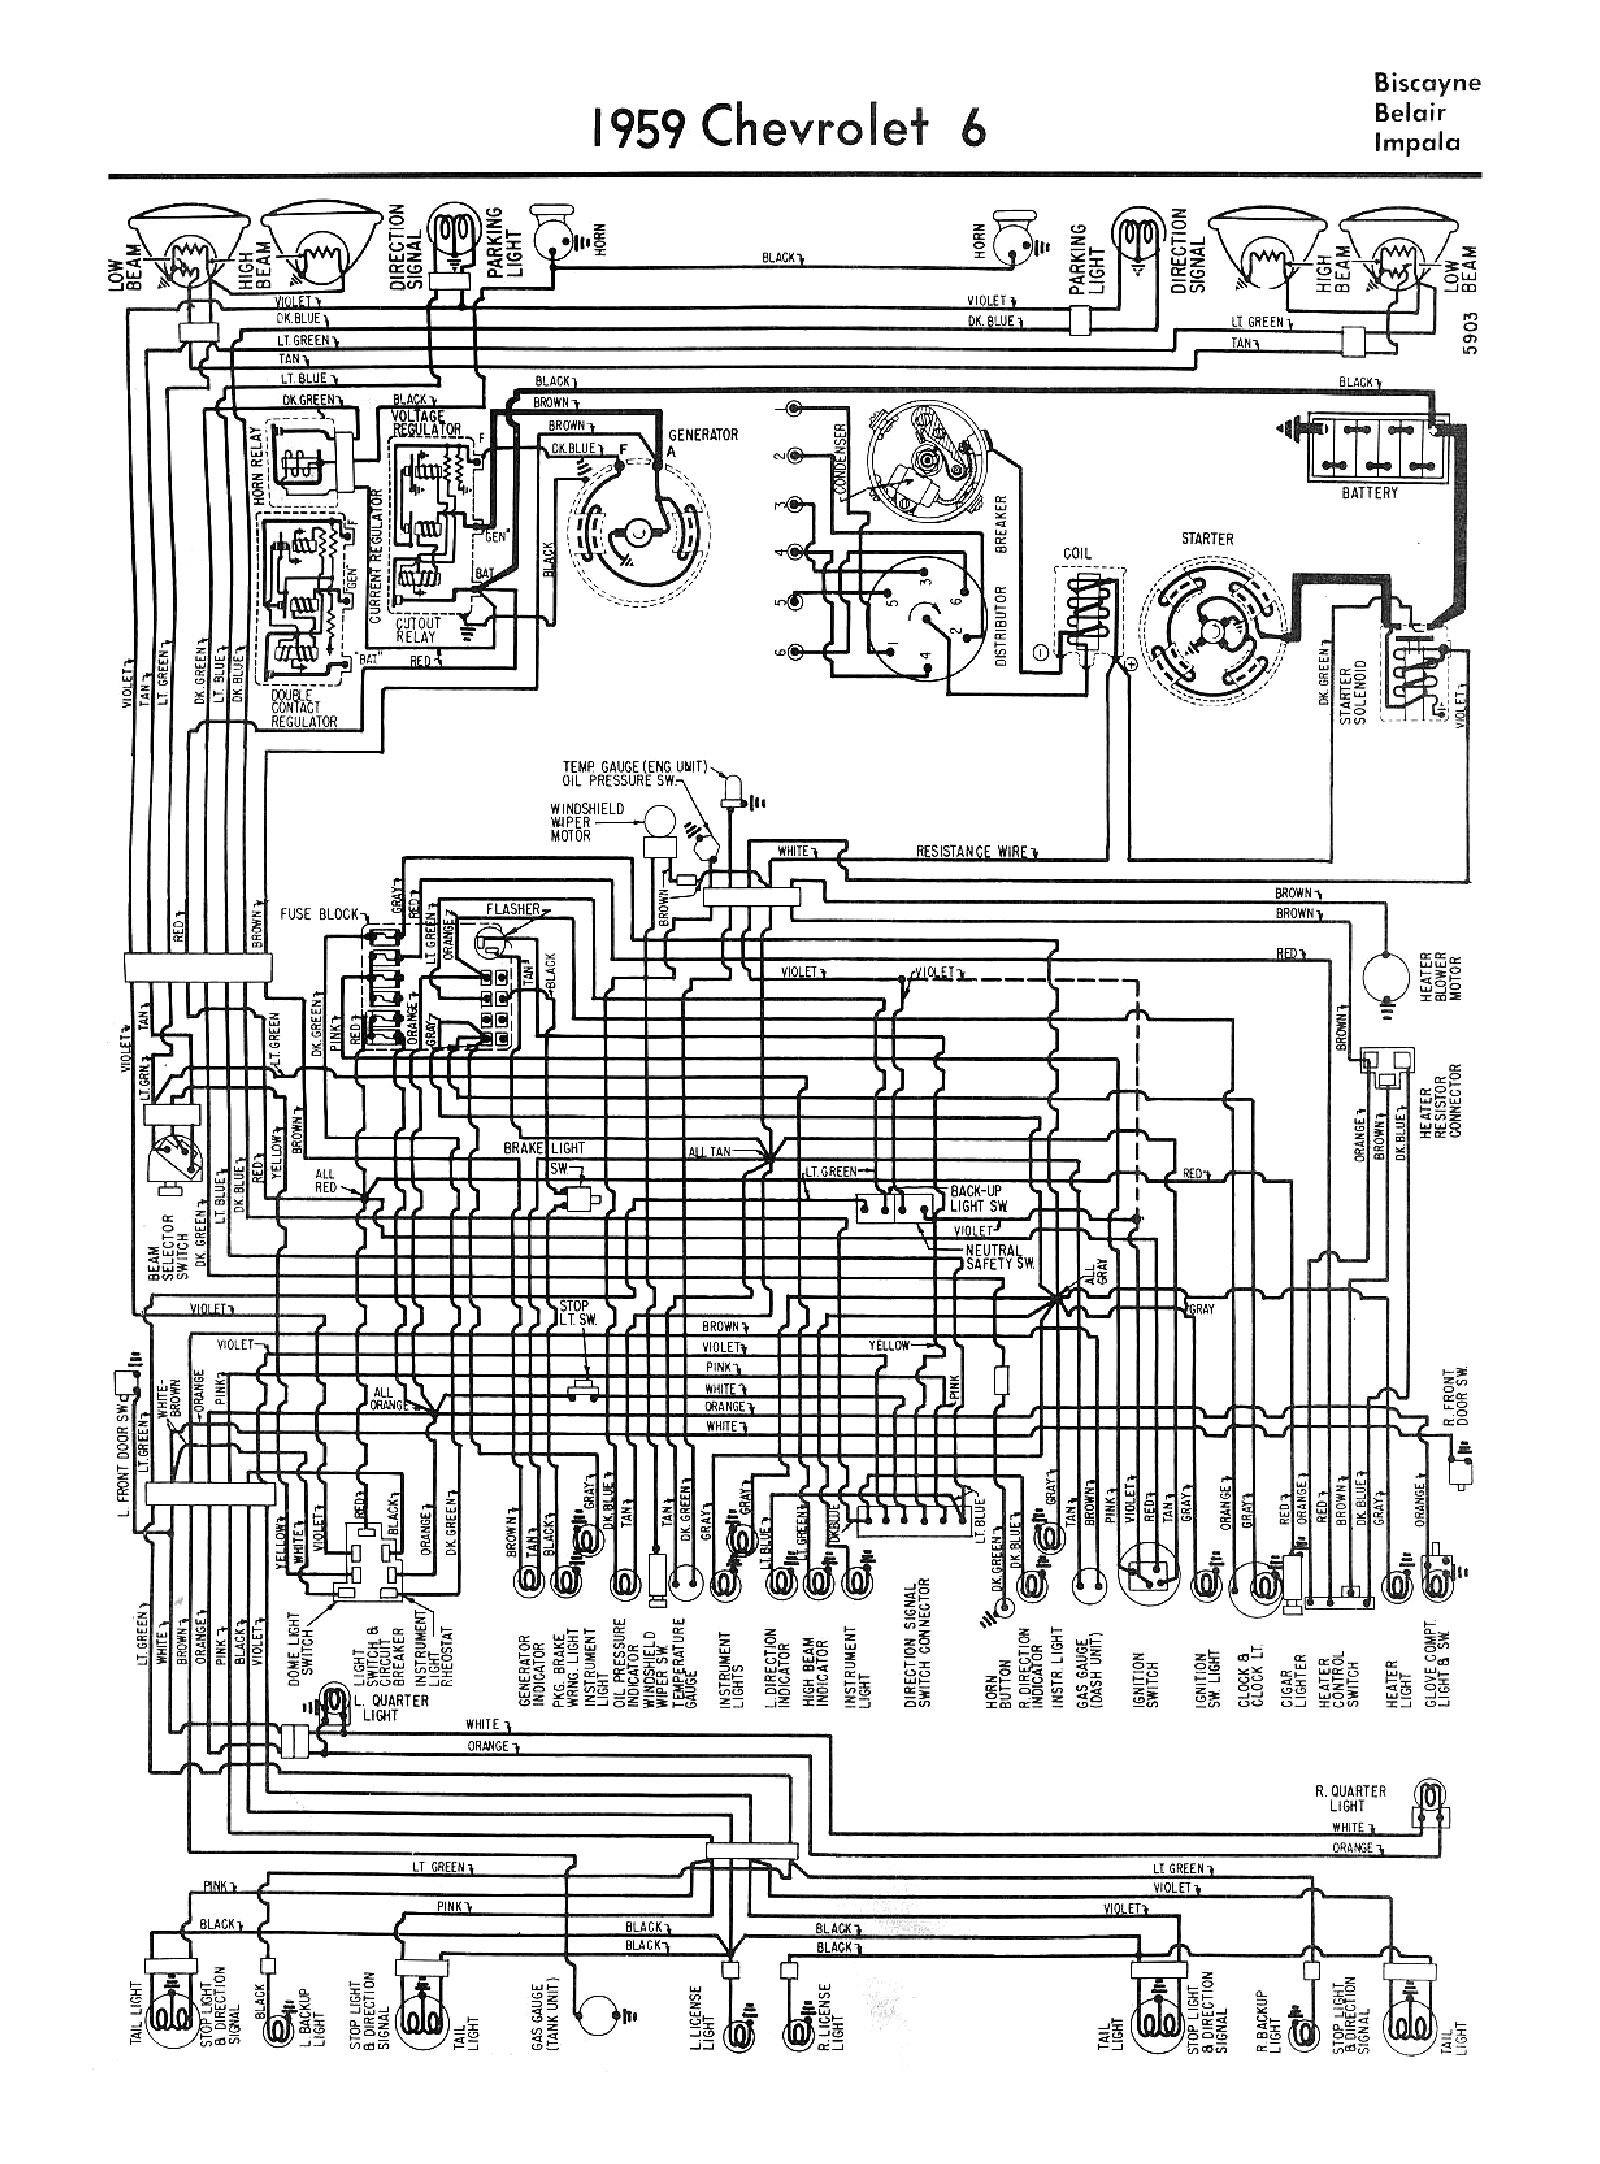 chevy wiring diagrams 1951 chevy truck wiring diagram 1951 chevy car wiring diagram